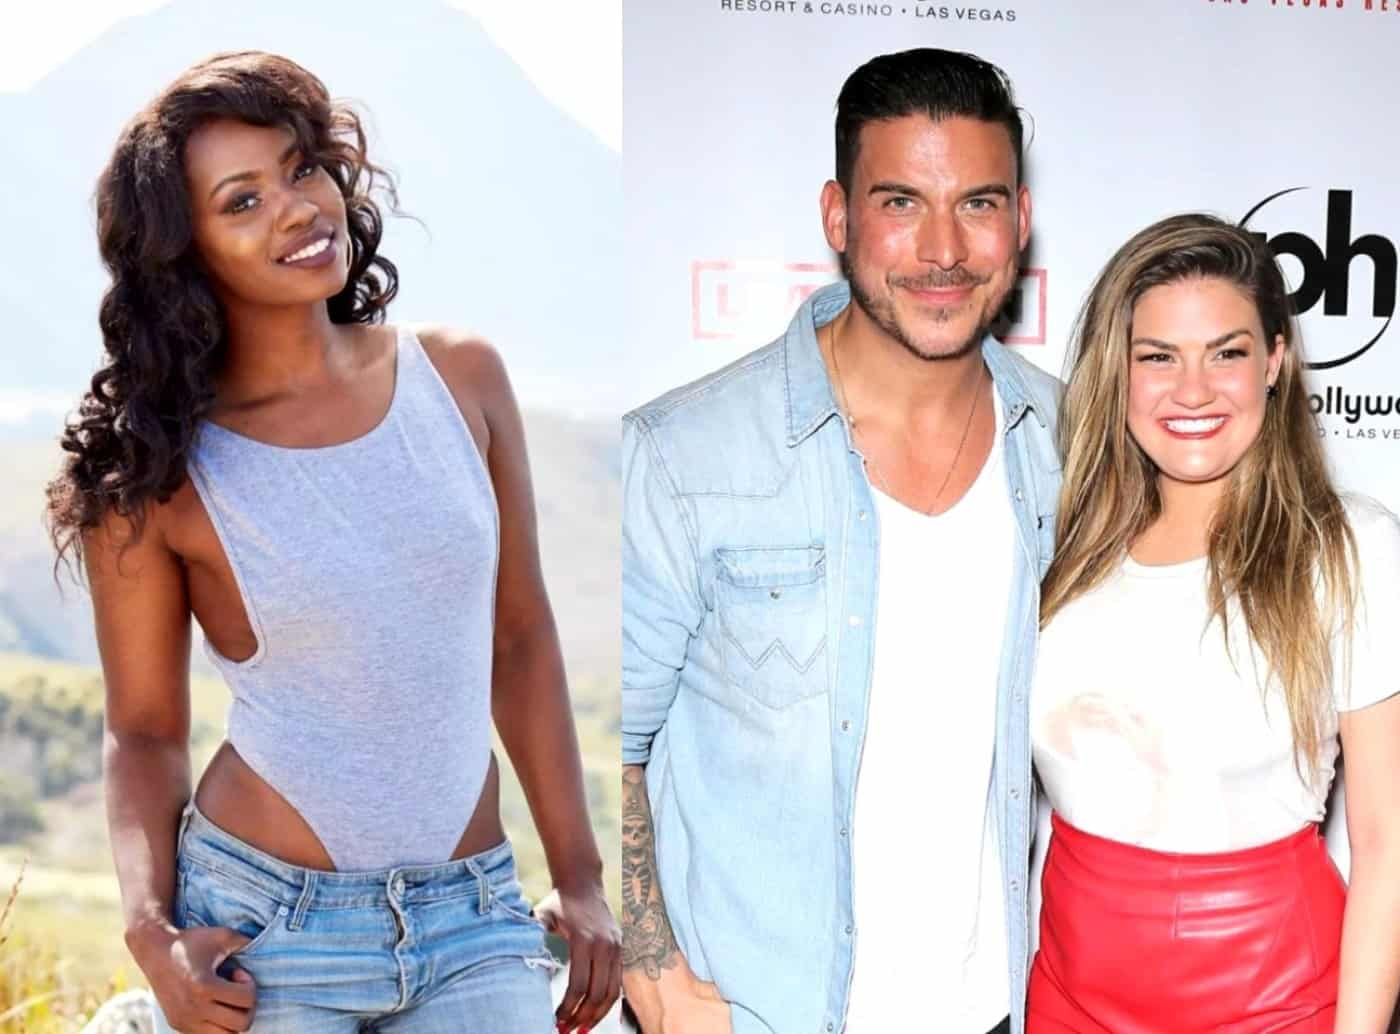 Faith Stowers Shades Jax Taylor After Reported Firing From Vanderpump Rules, Confirms Her New Show and Talks Brittany's Pregnancy